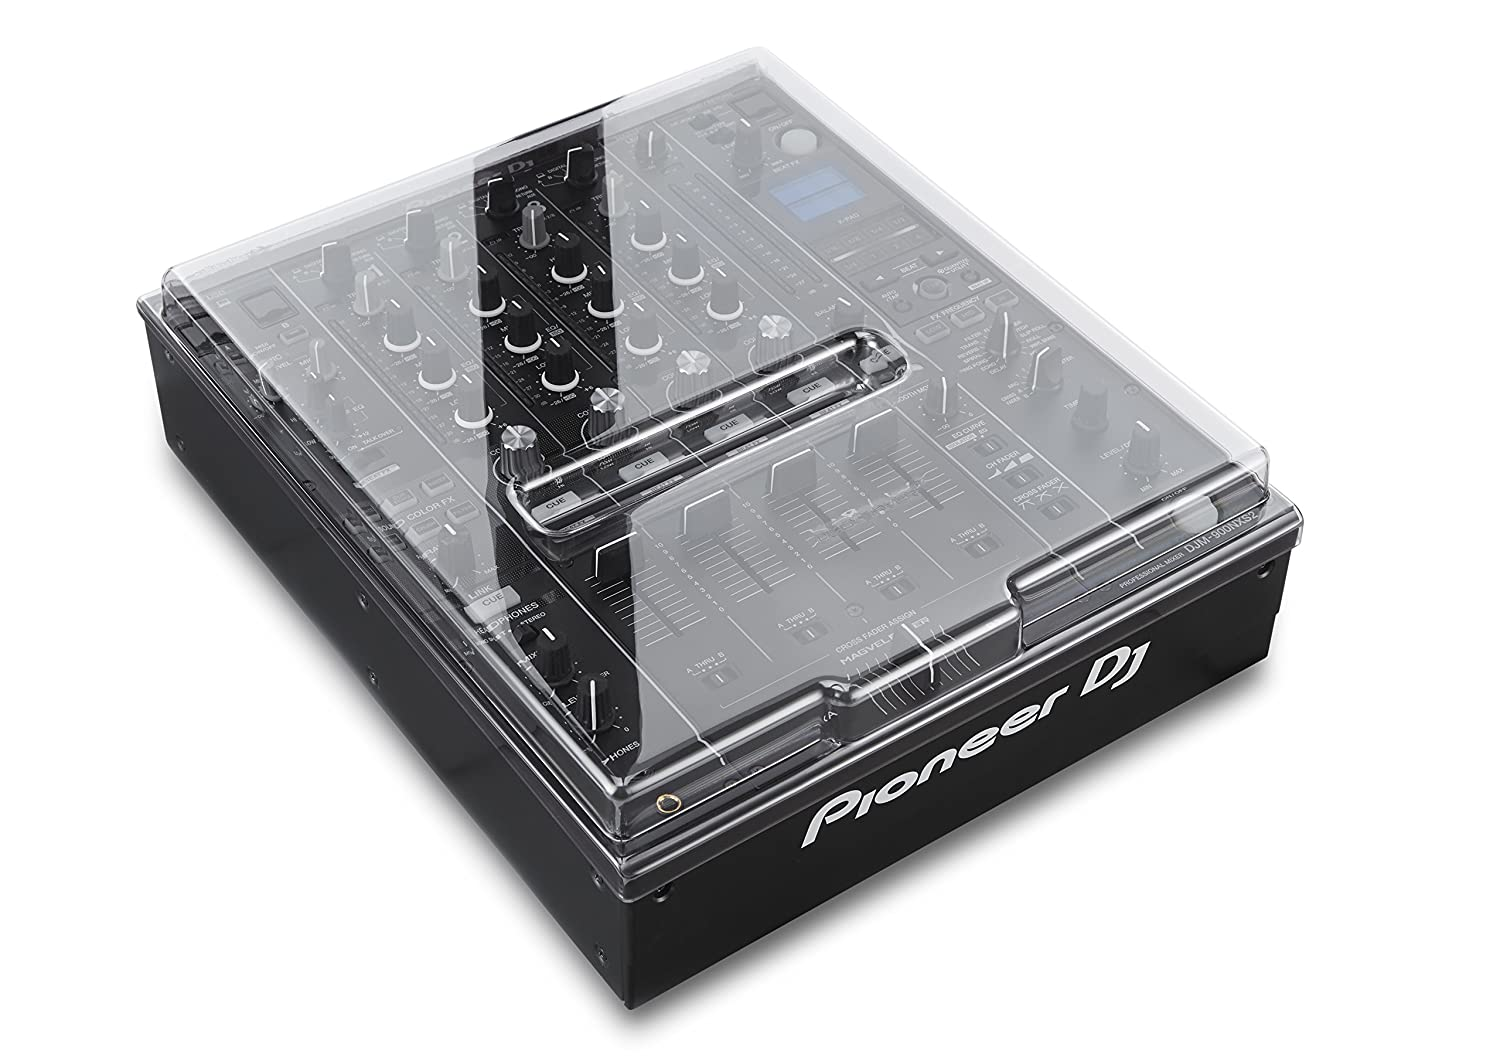 Decksaver DS-PC-DJM900NXS2 Pioneer DJM-900 Nexus 2 Polycarbonate Cover